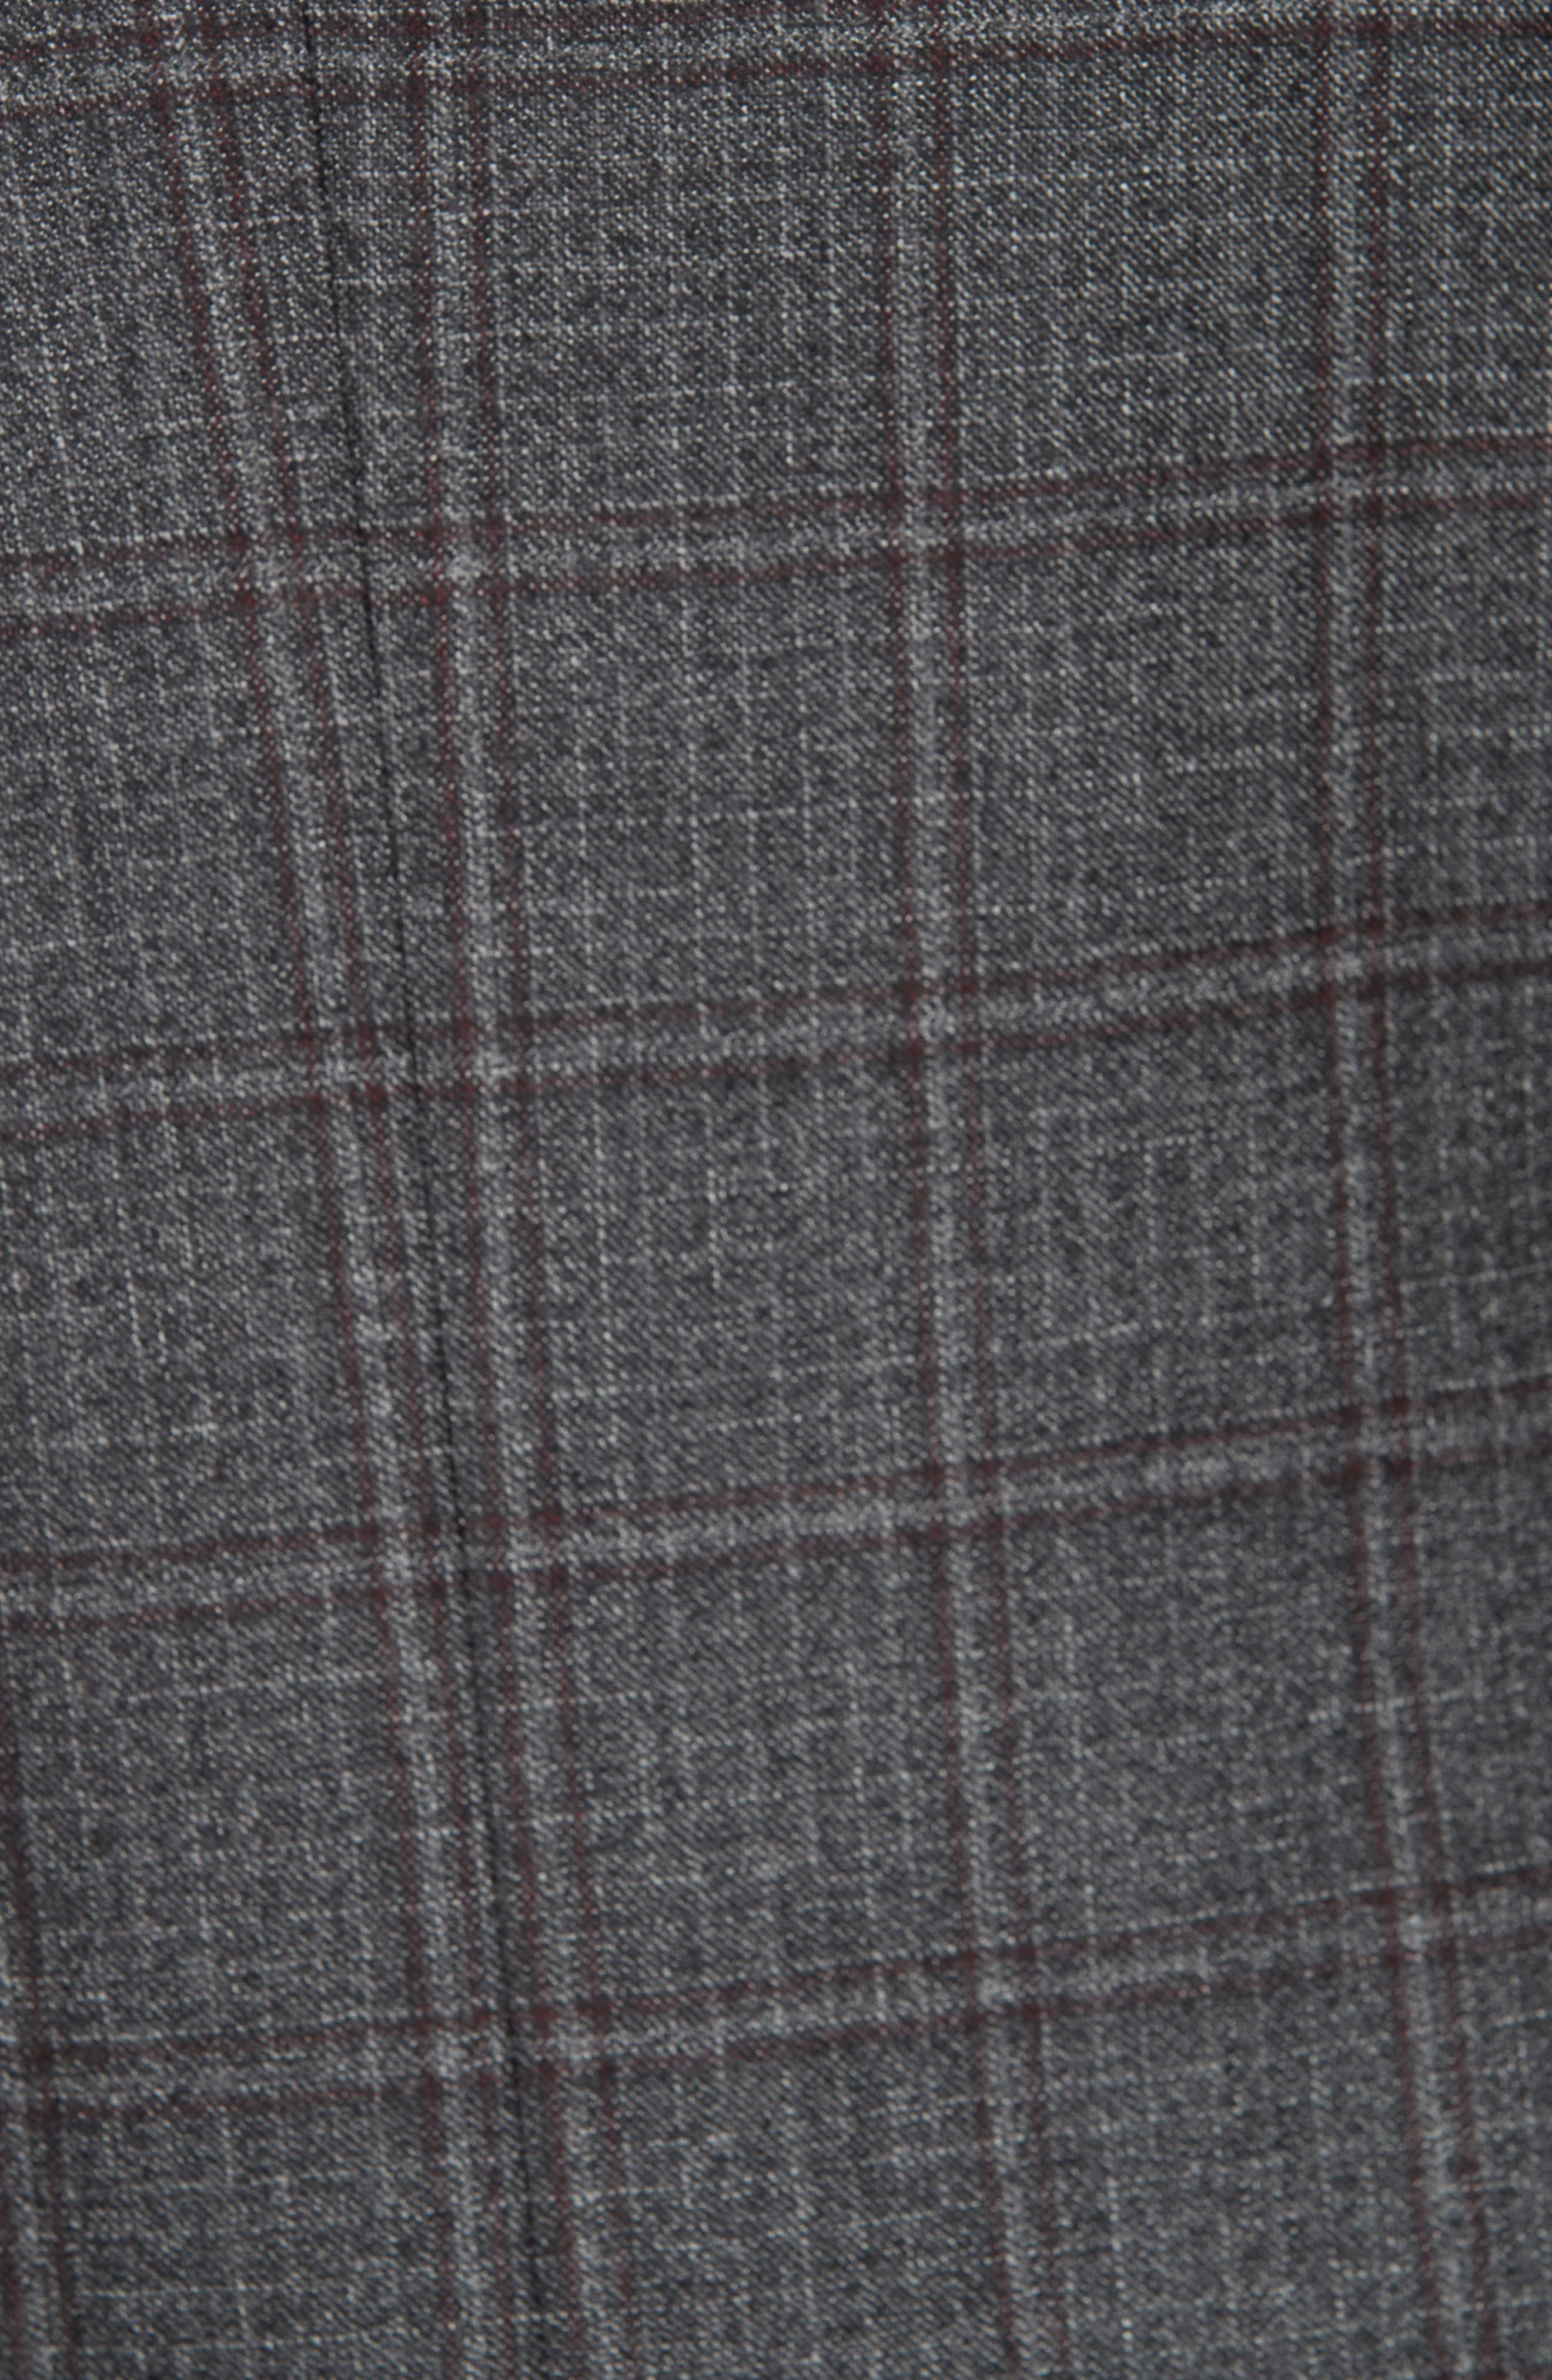 Trim Fit Plaid Wool Suit,                             Alternate thumbnail 6, color,                             GREY/ BURGUNDY